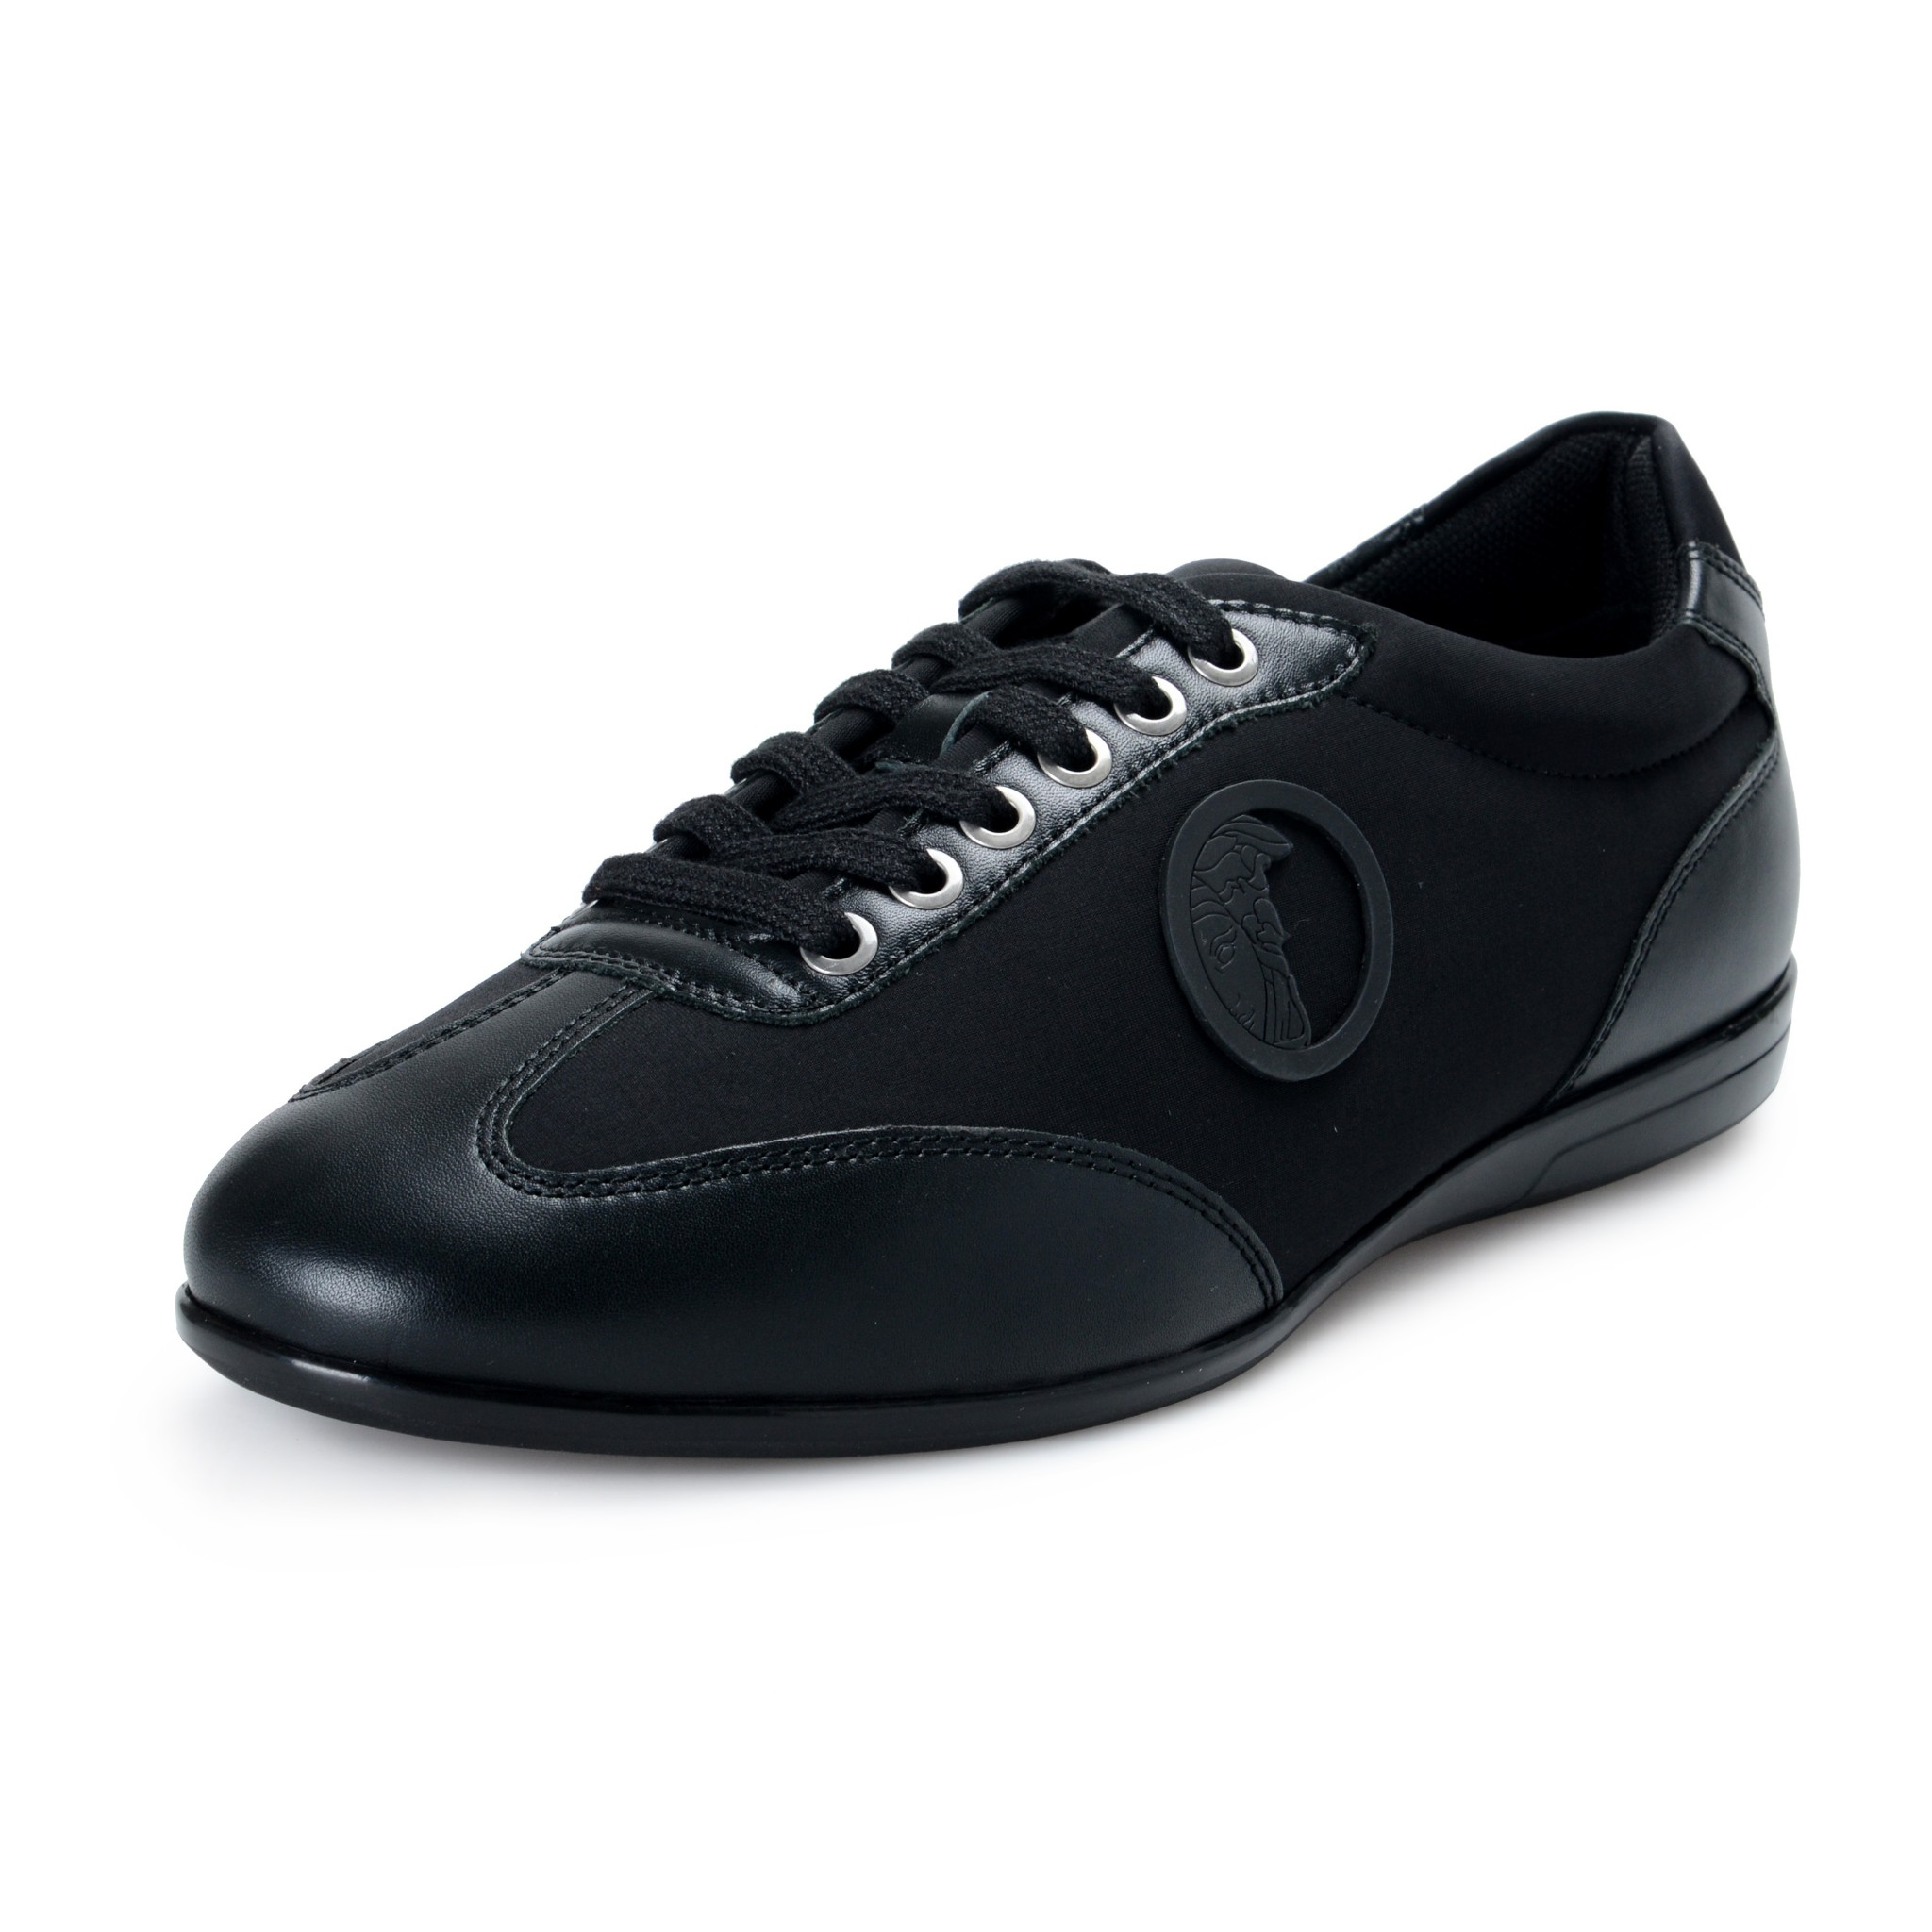 Details about Versace Collection Men's Black Leather Canvas Lace Up Fashion  Sneakers Shoes